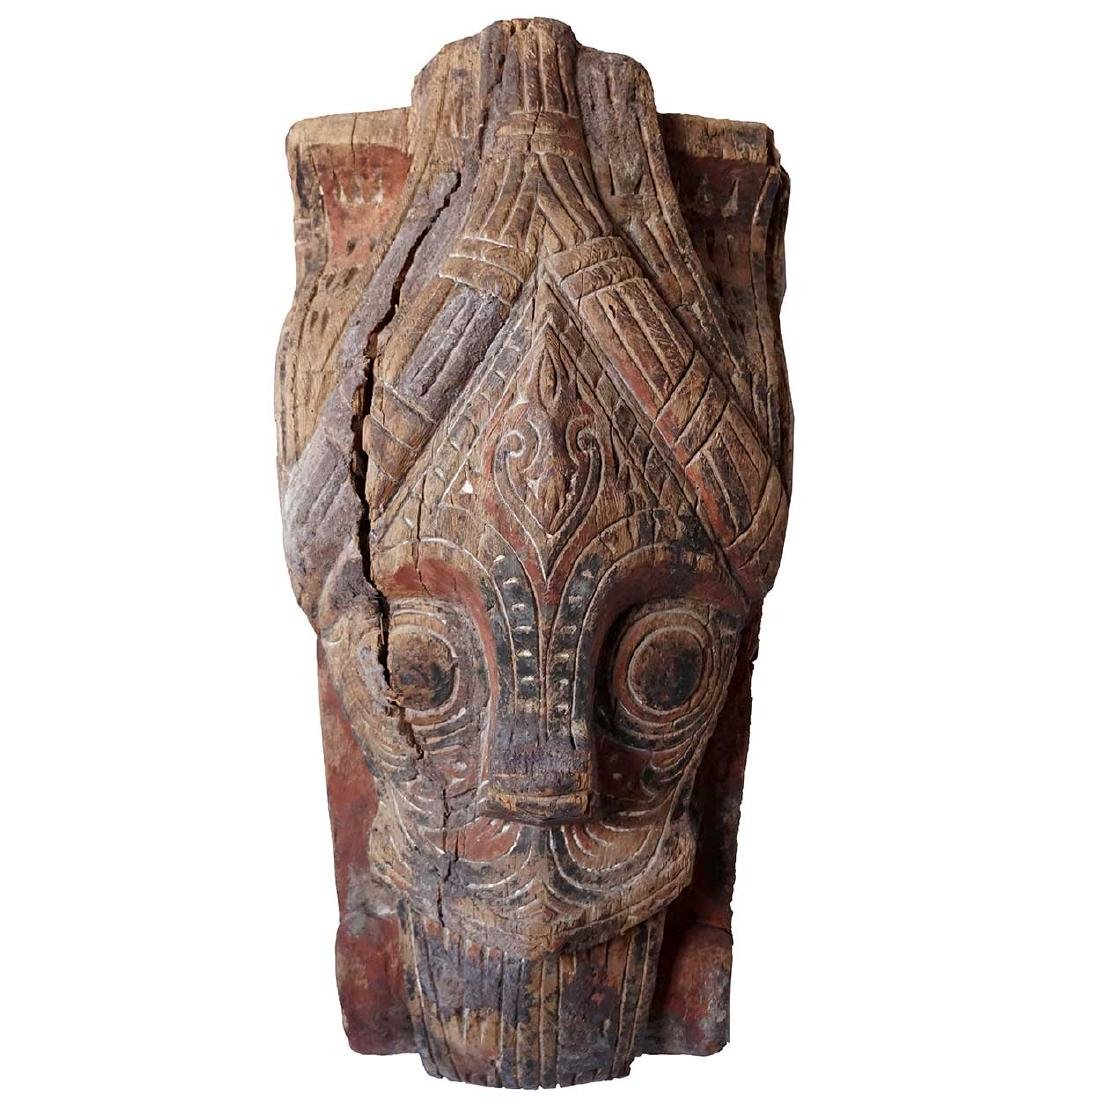 Indonesian Painted/Carved Wood House Guardian Mask